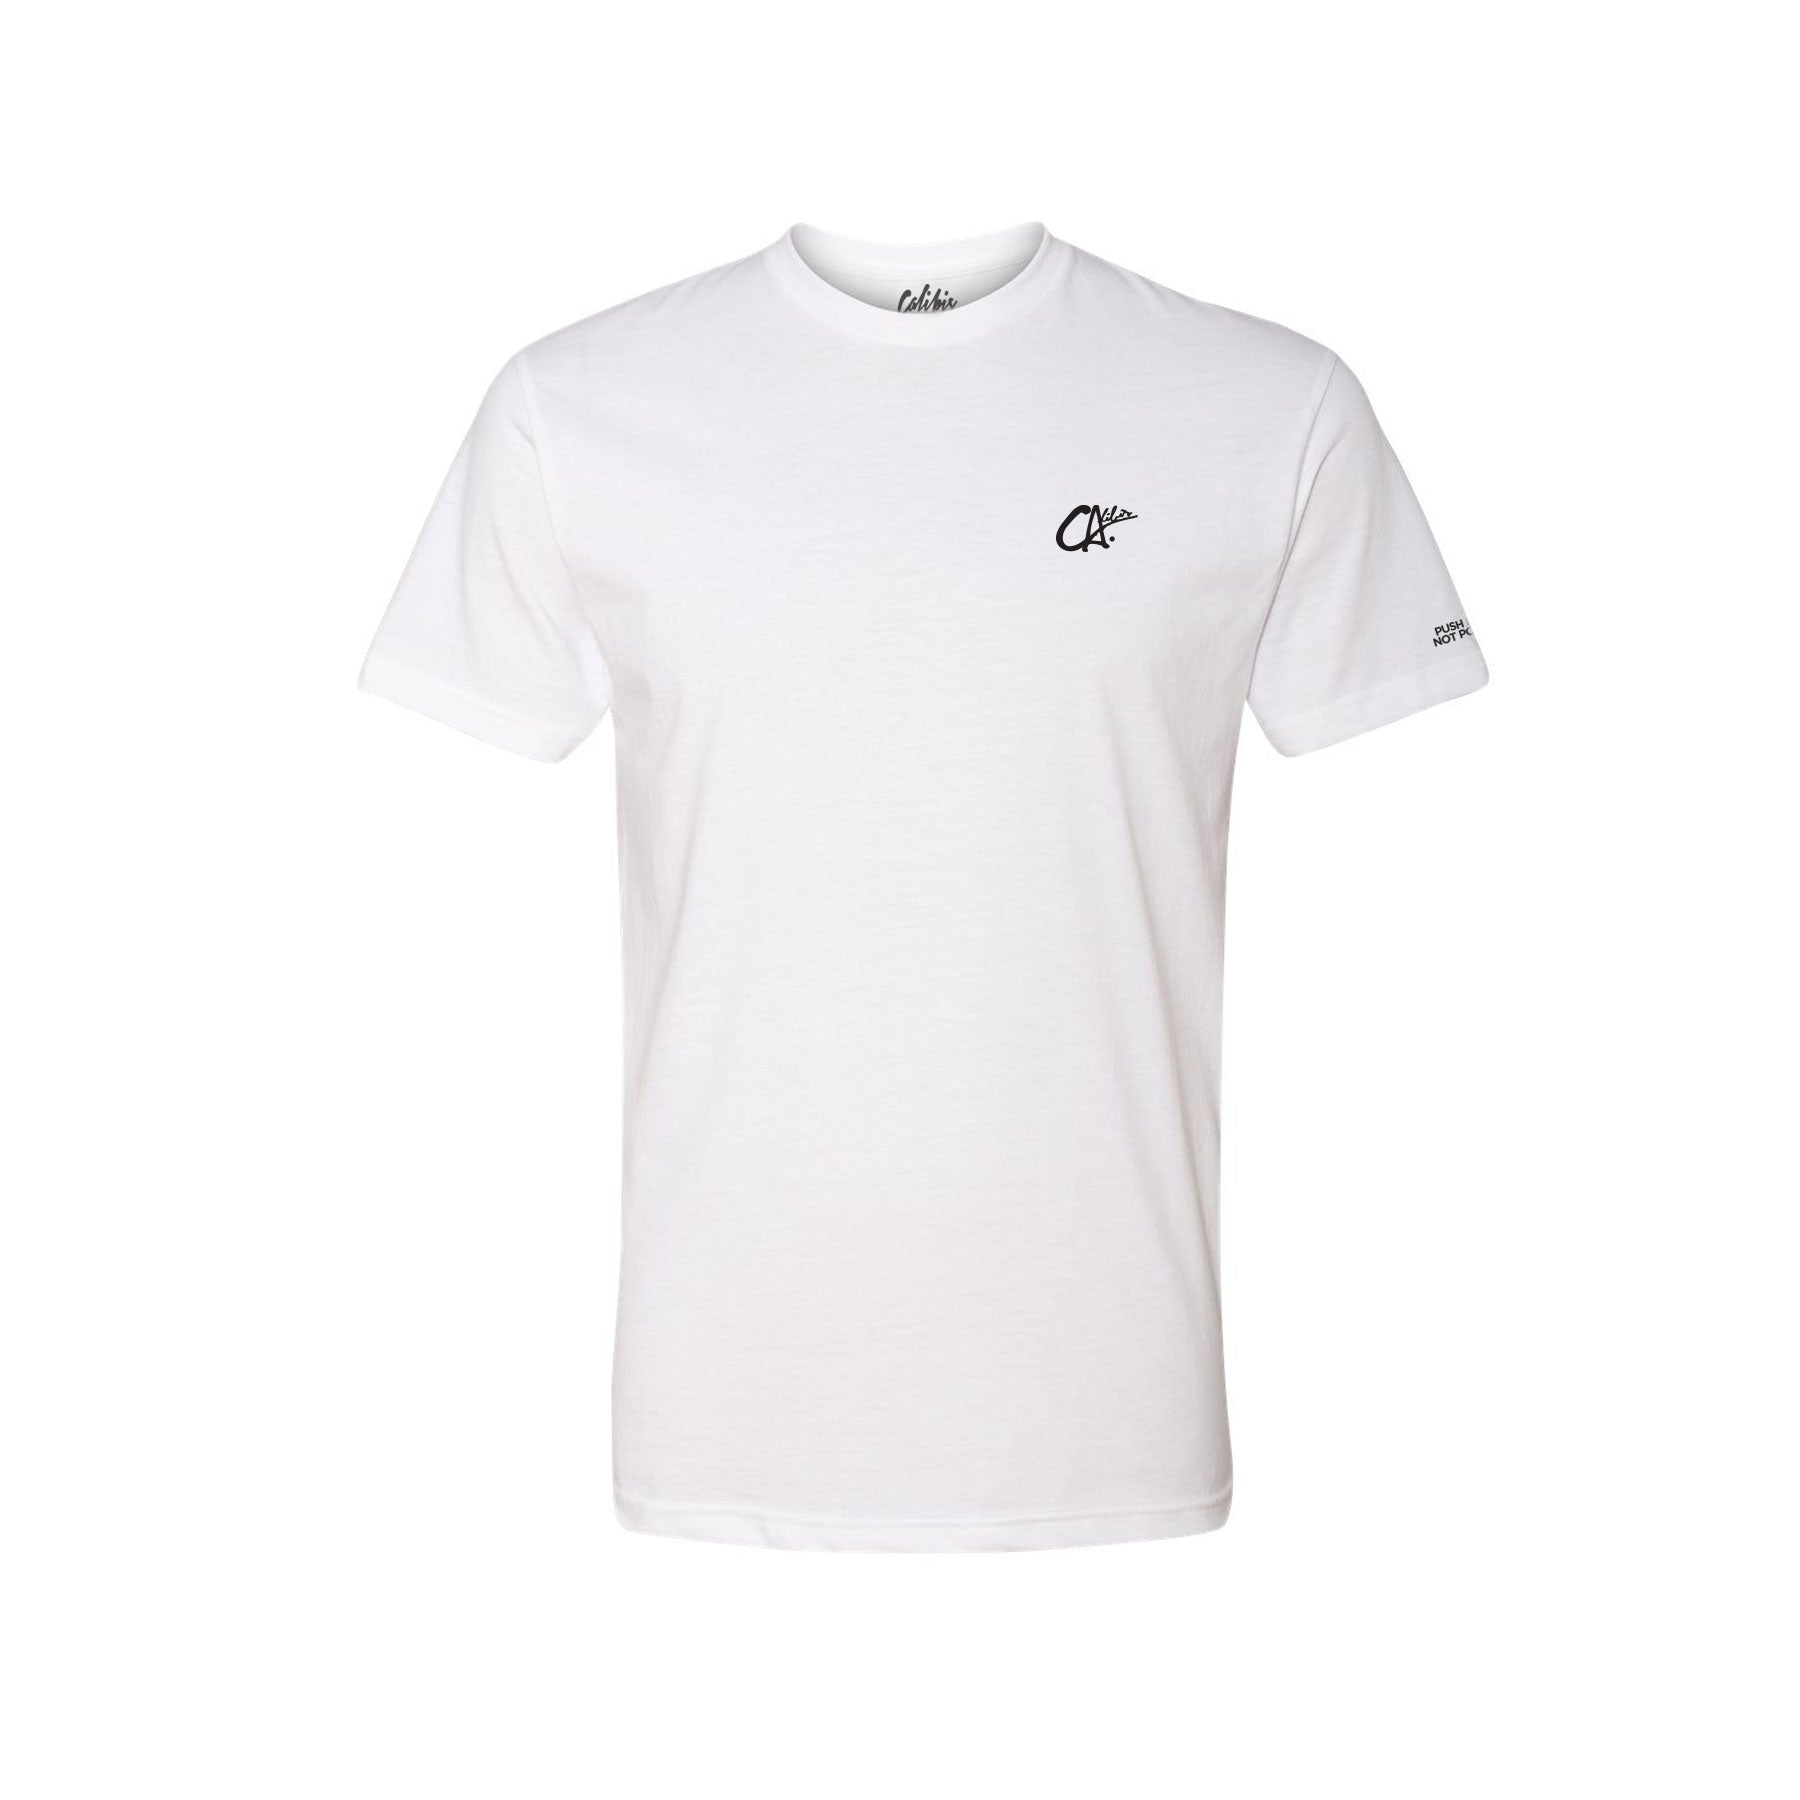 Logo Premium Tee by Calibis Clothing